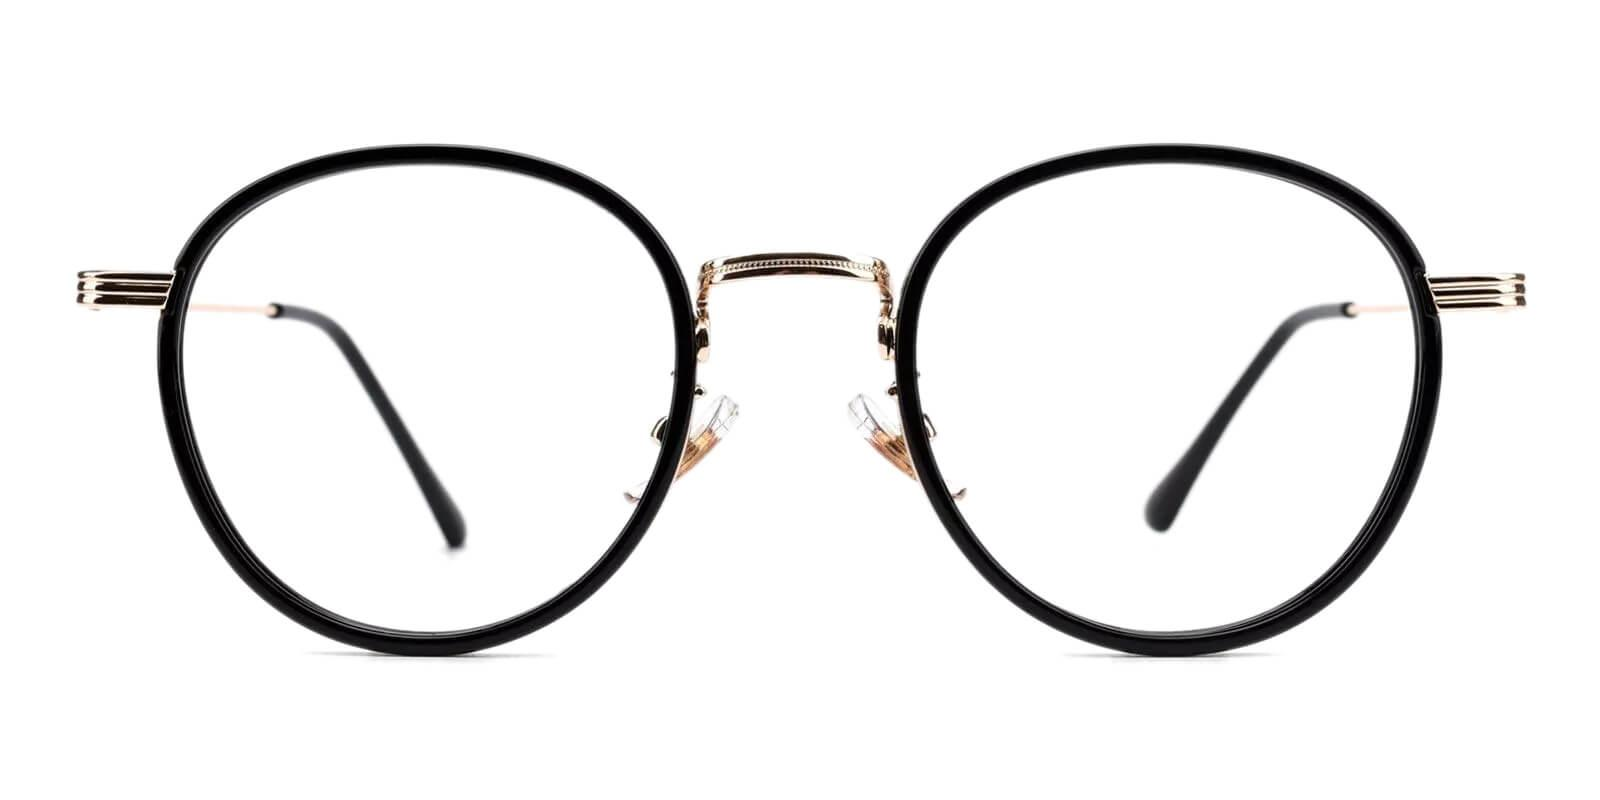 Quennell Black Metal Eyeglasses , Fashion , NosePads Frames from ABBE Glasses